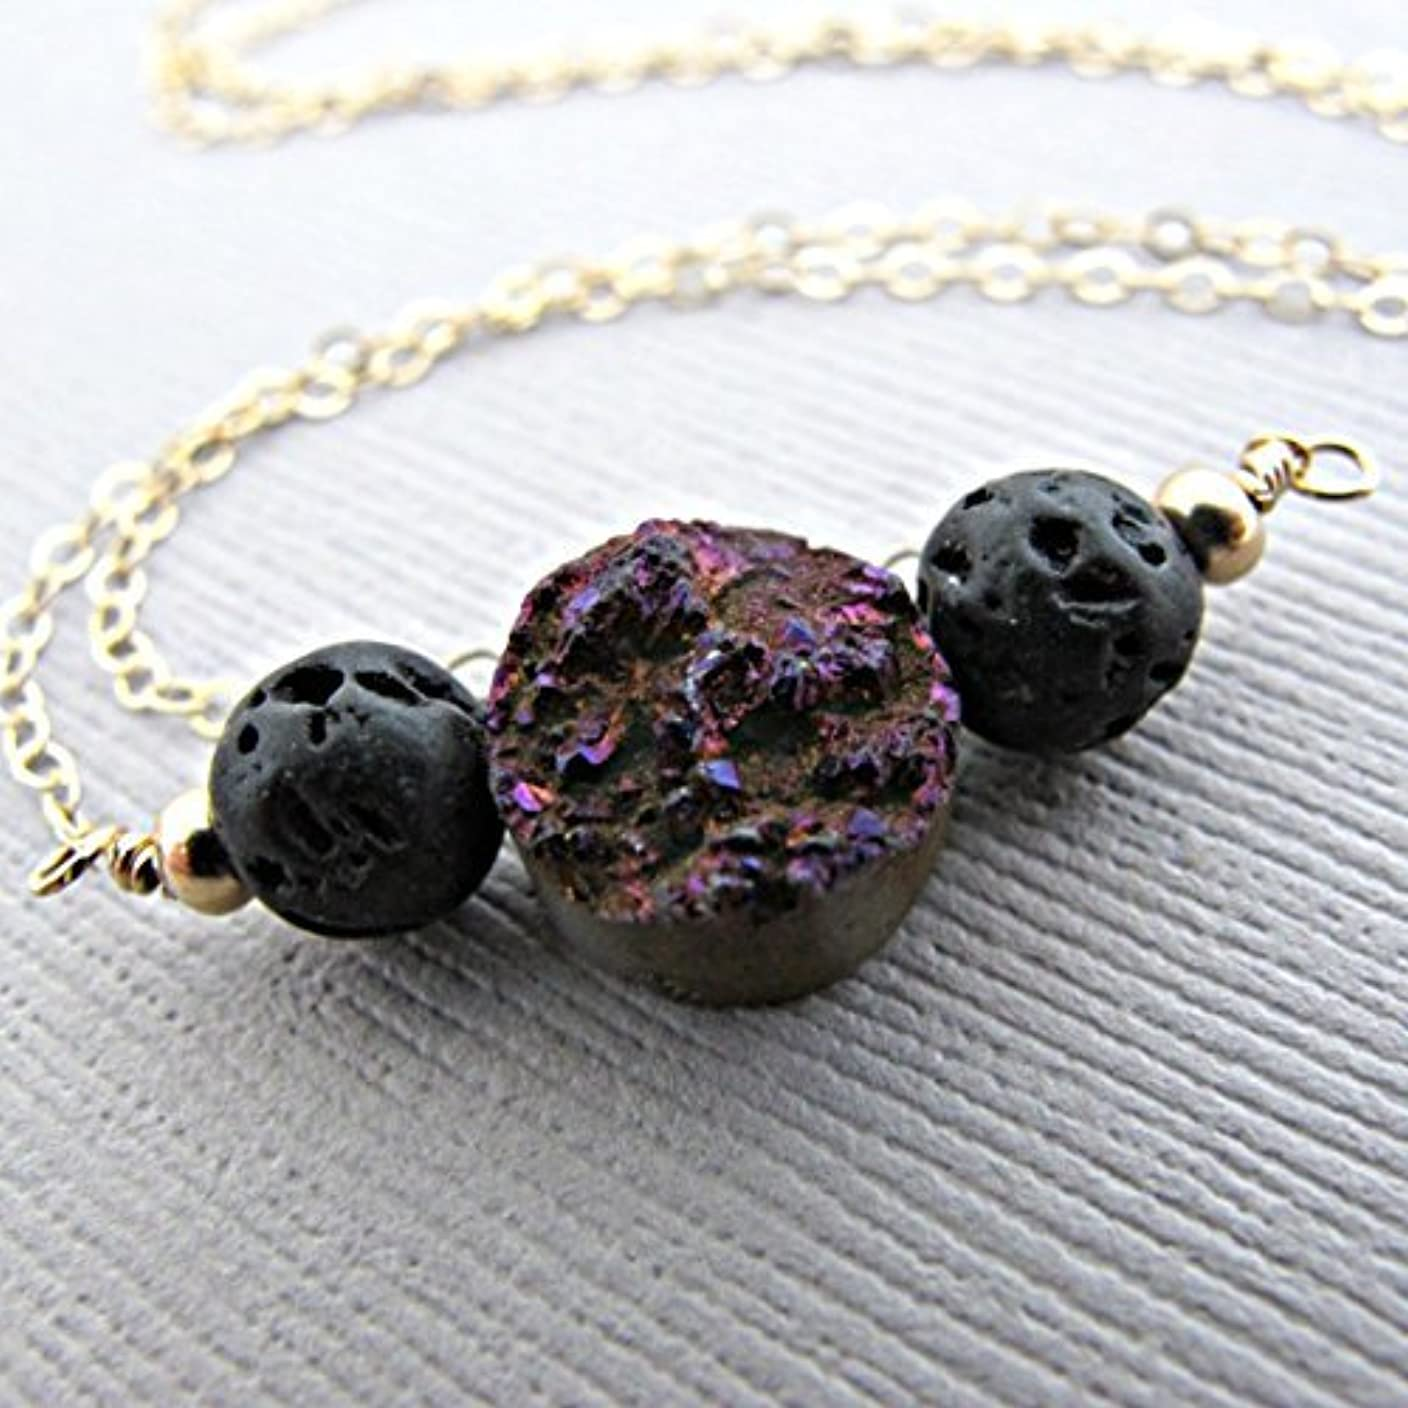 汗すでにじゃないPurple Druzy Lava Pendant Essential Oil Necklace Diffuser Aromatherapy - Simple Minimalist Lava Bead Diffuser...